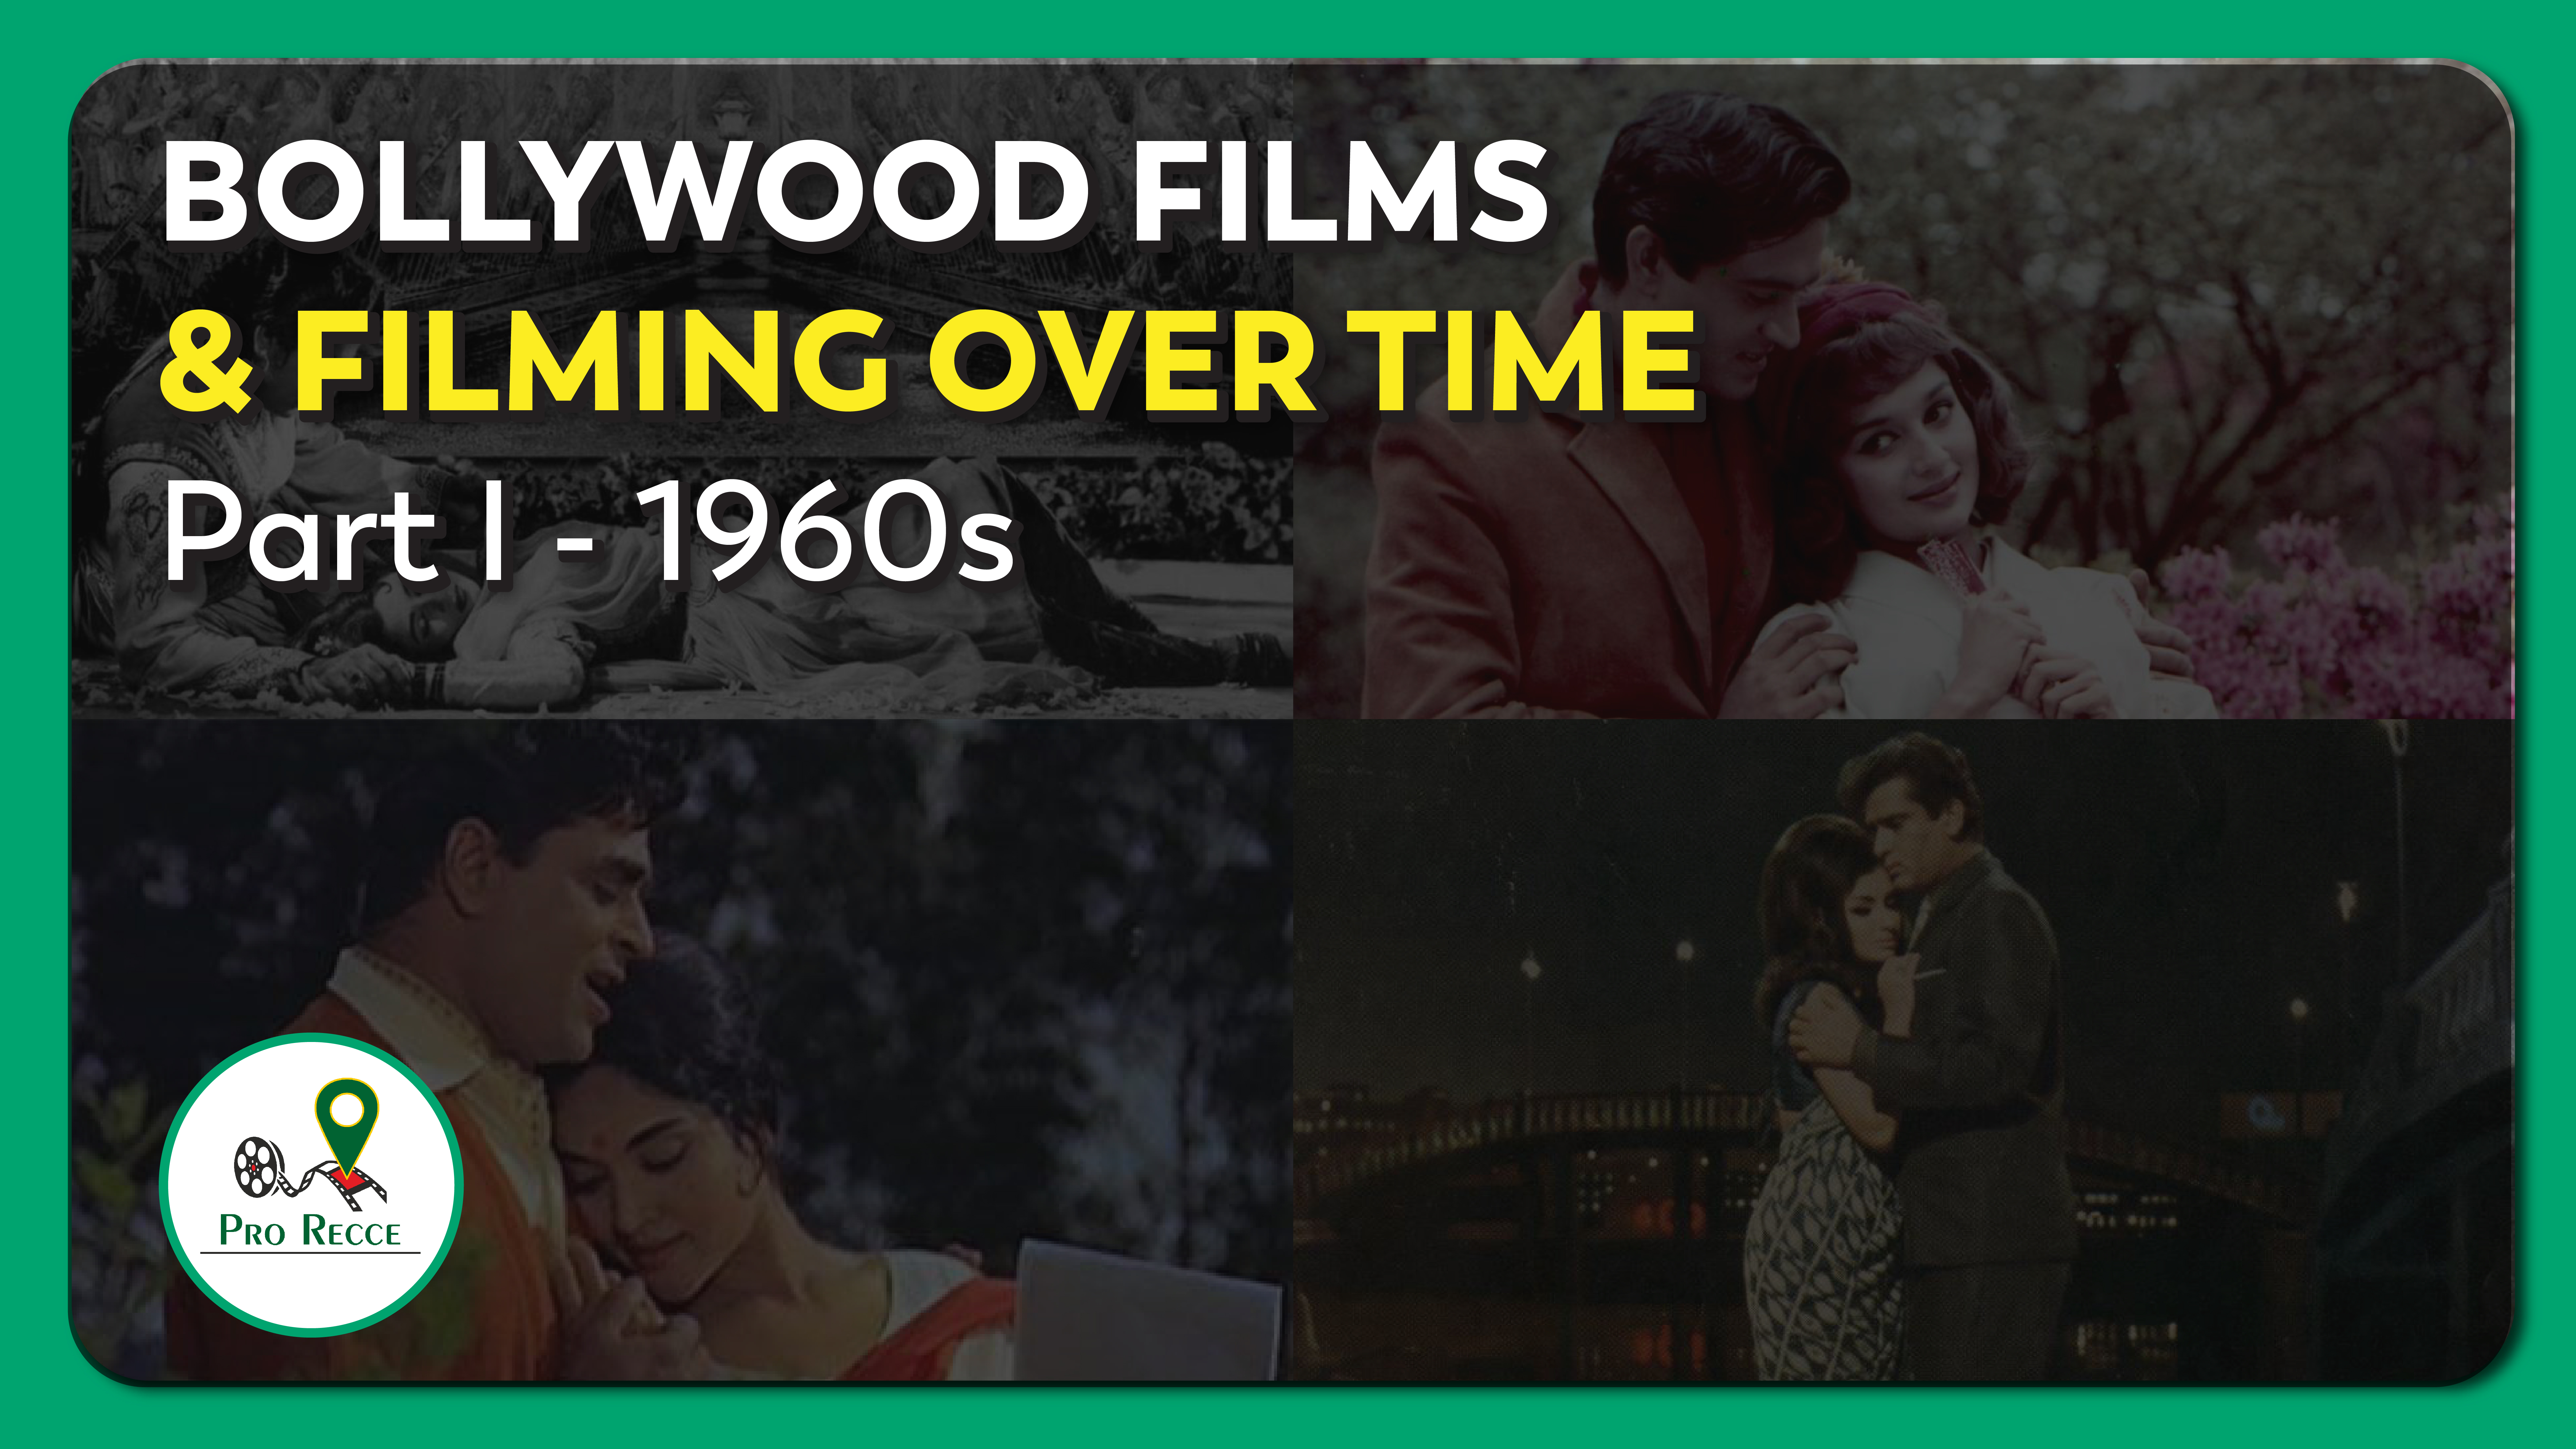 Bollywood Films and Filming Over Time